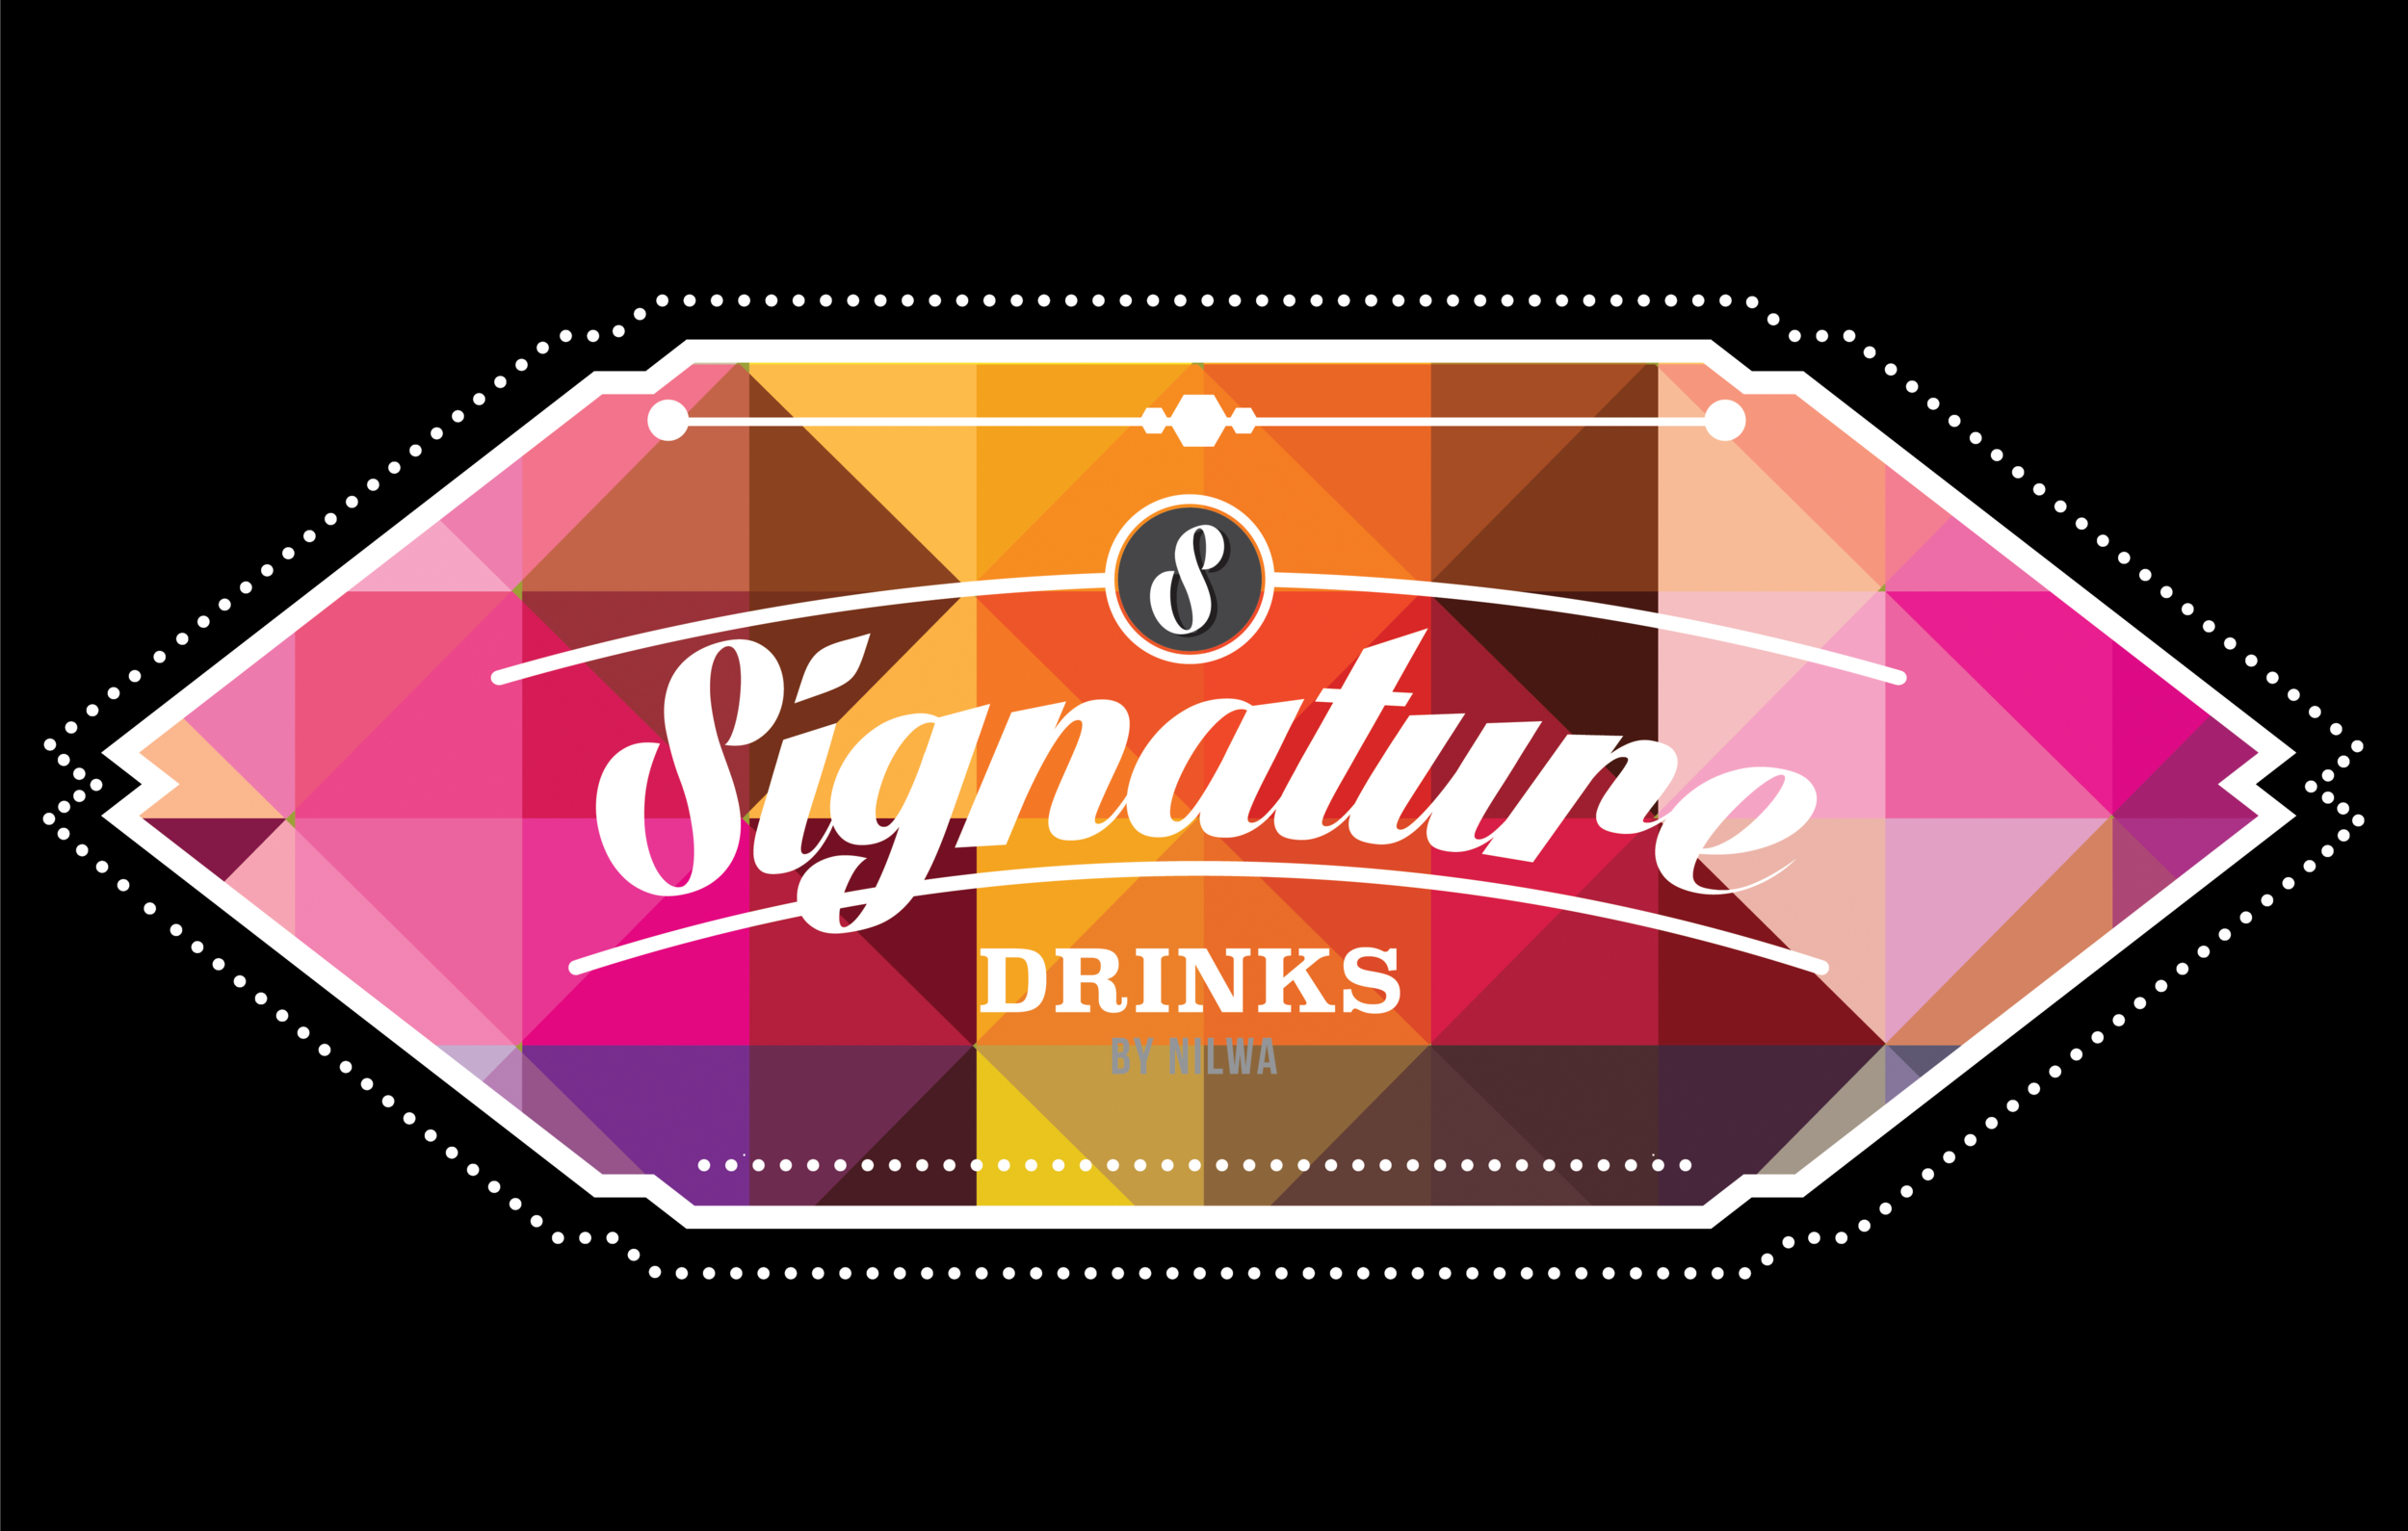 SIGNAGE_DRINKS_LOGO_WHITE_COLOUR-06web3.png